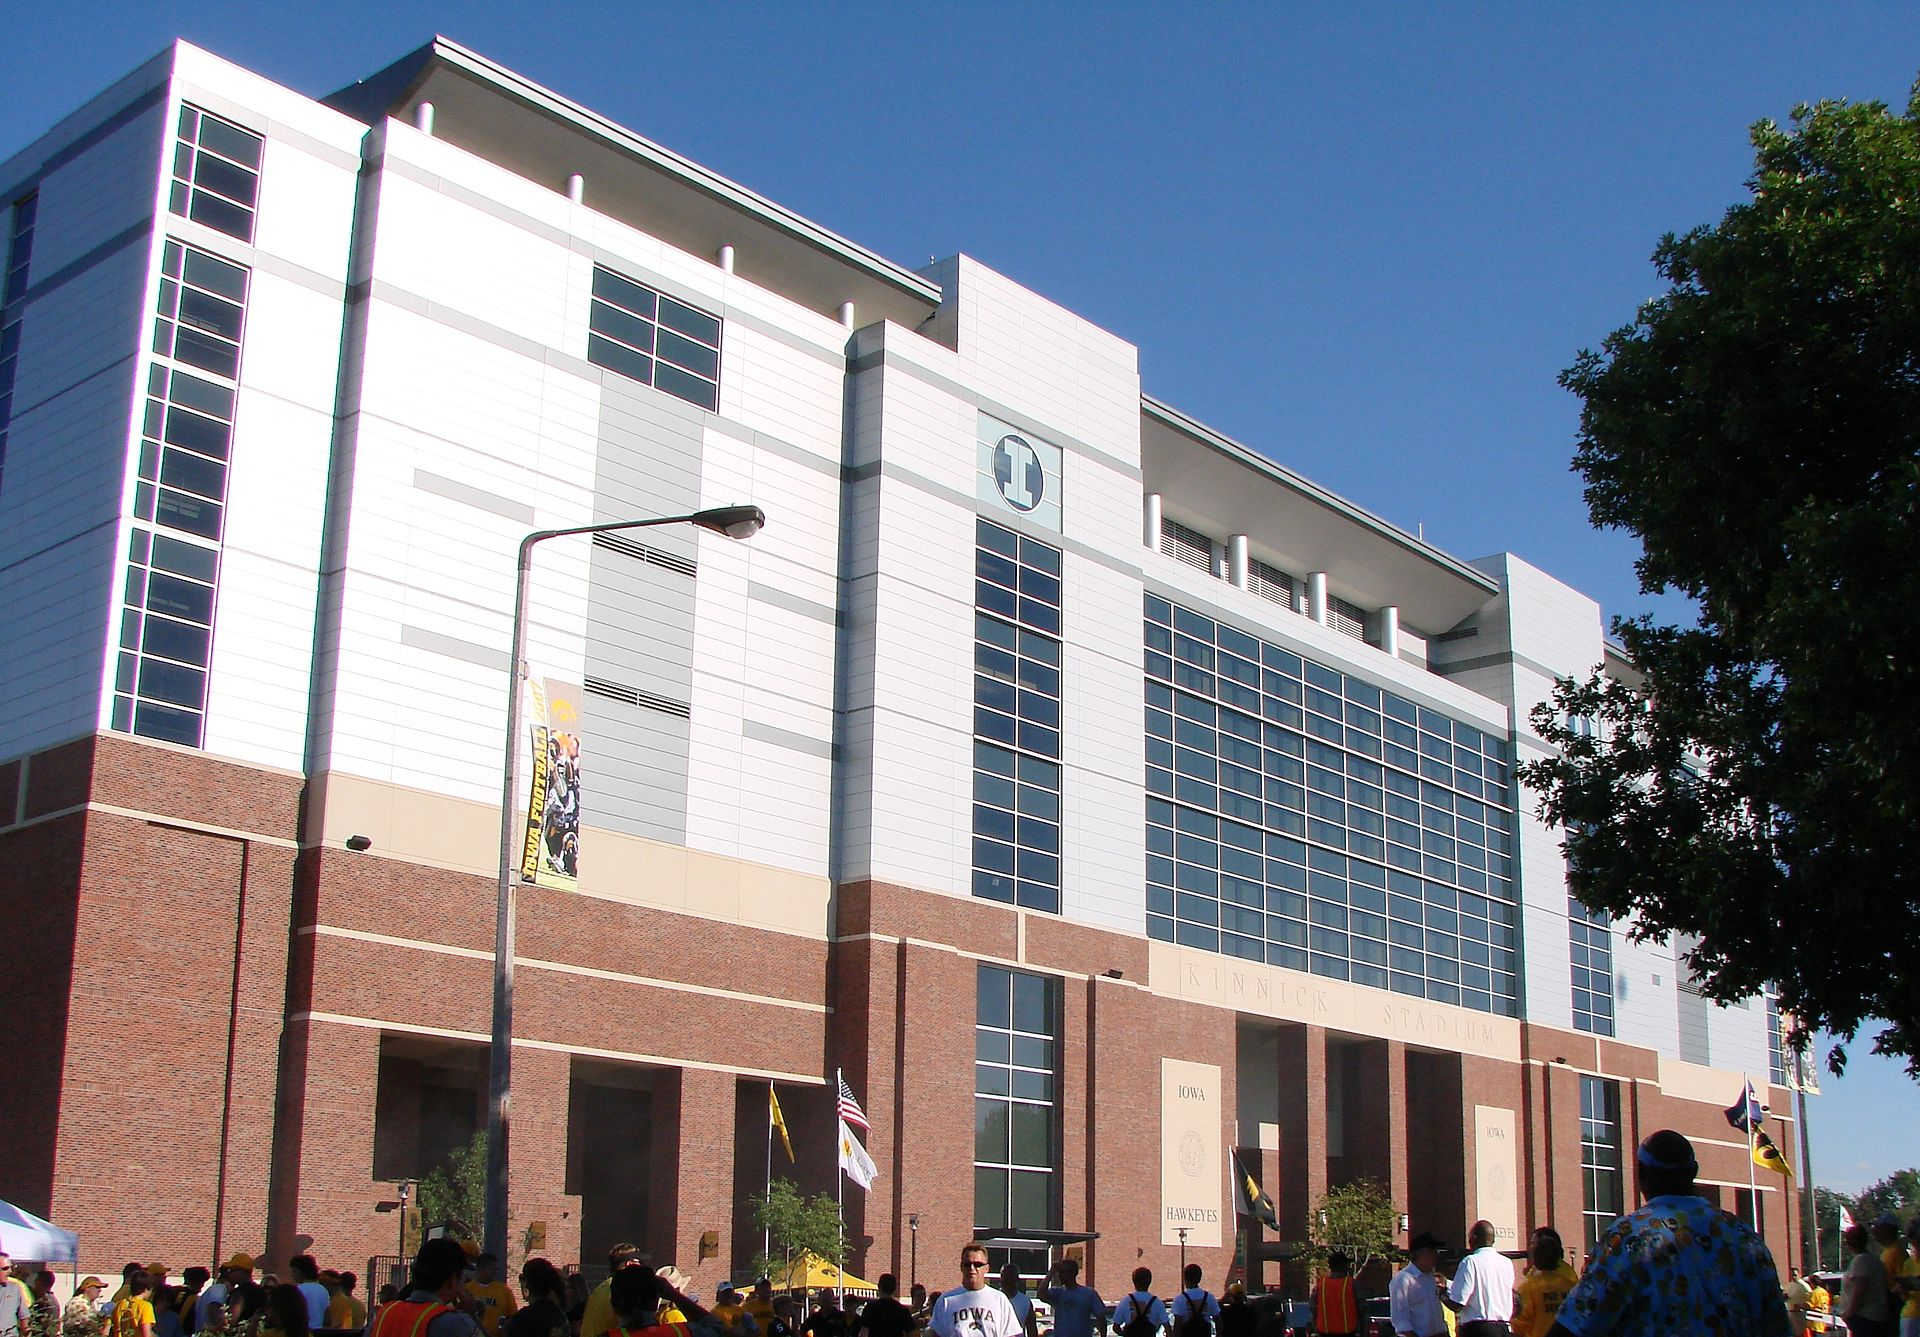 Kinnick stadium wikipedia for Cost of building a house in iowa